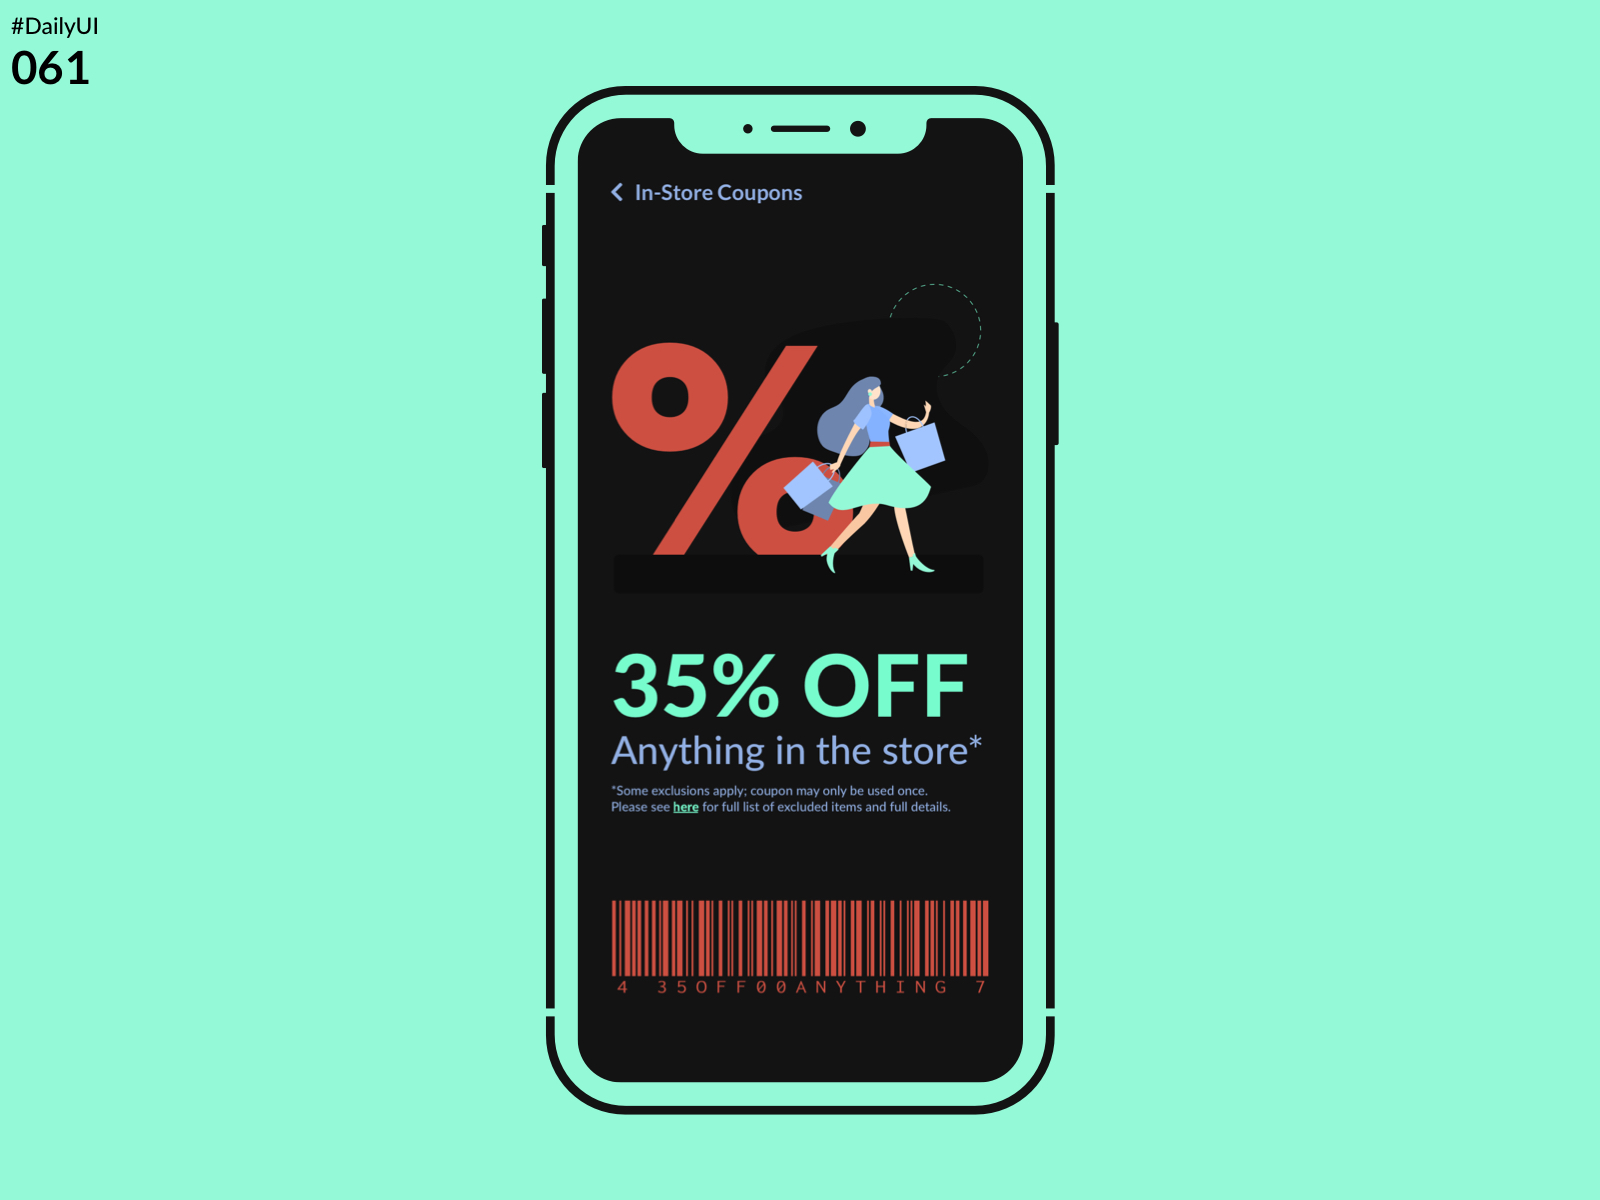 DailyUI Challenge 061 - Redeem Coupon)